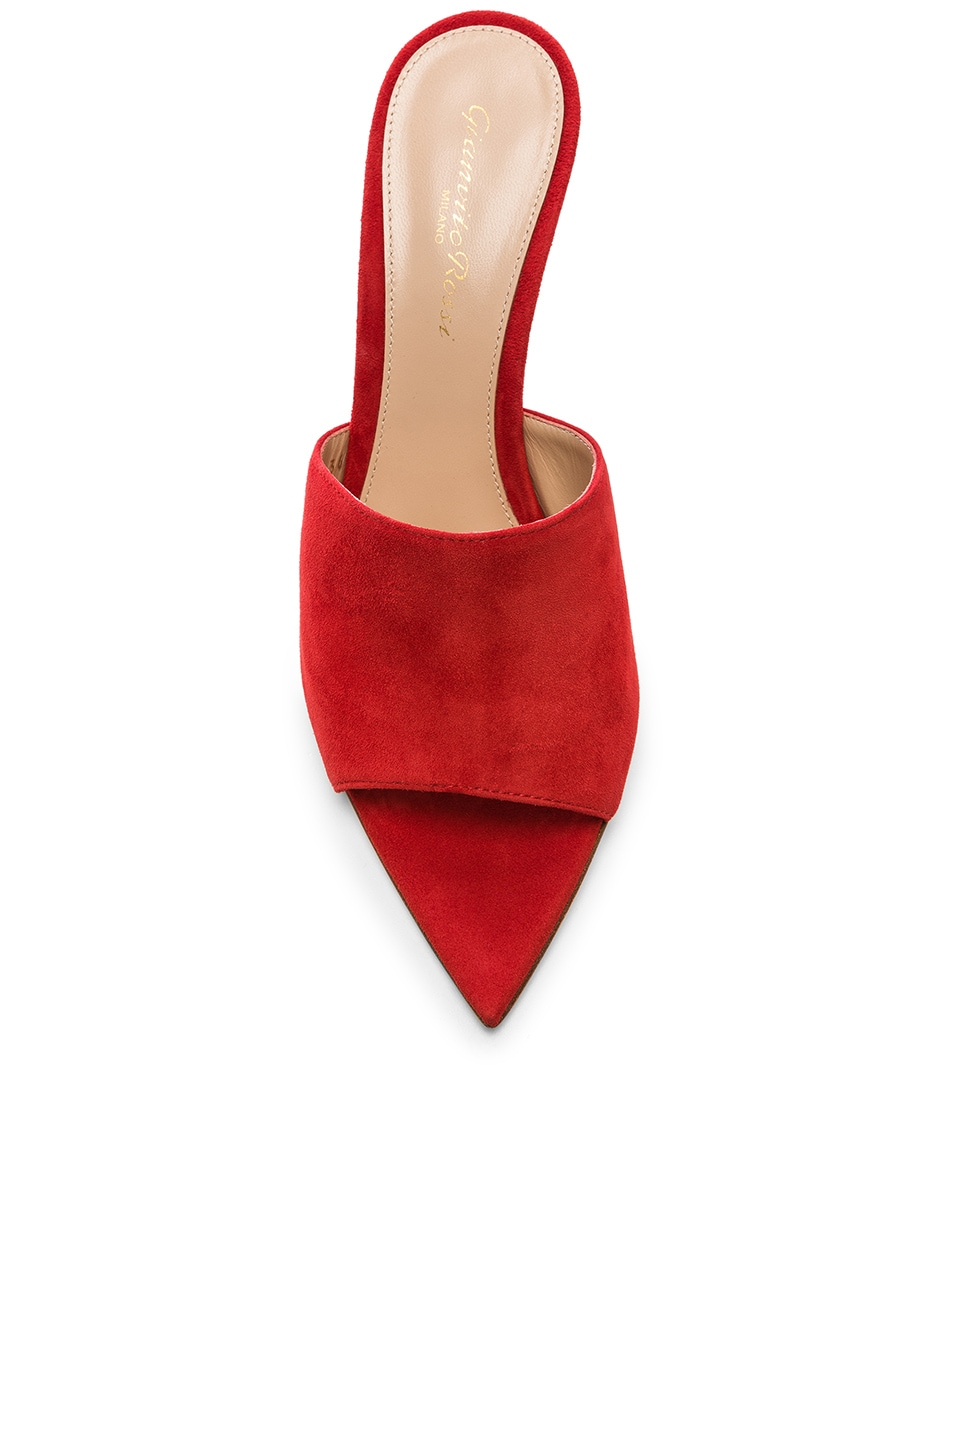 Image 4 of Gianvito Rossi Alise Mules in Tabasco Red